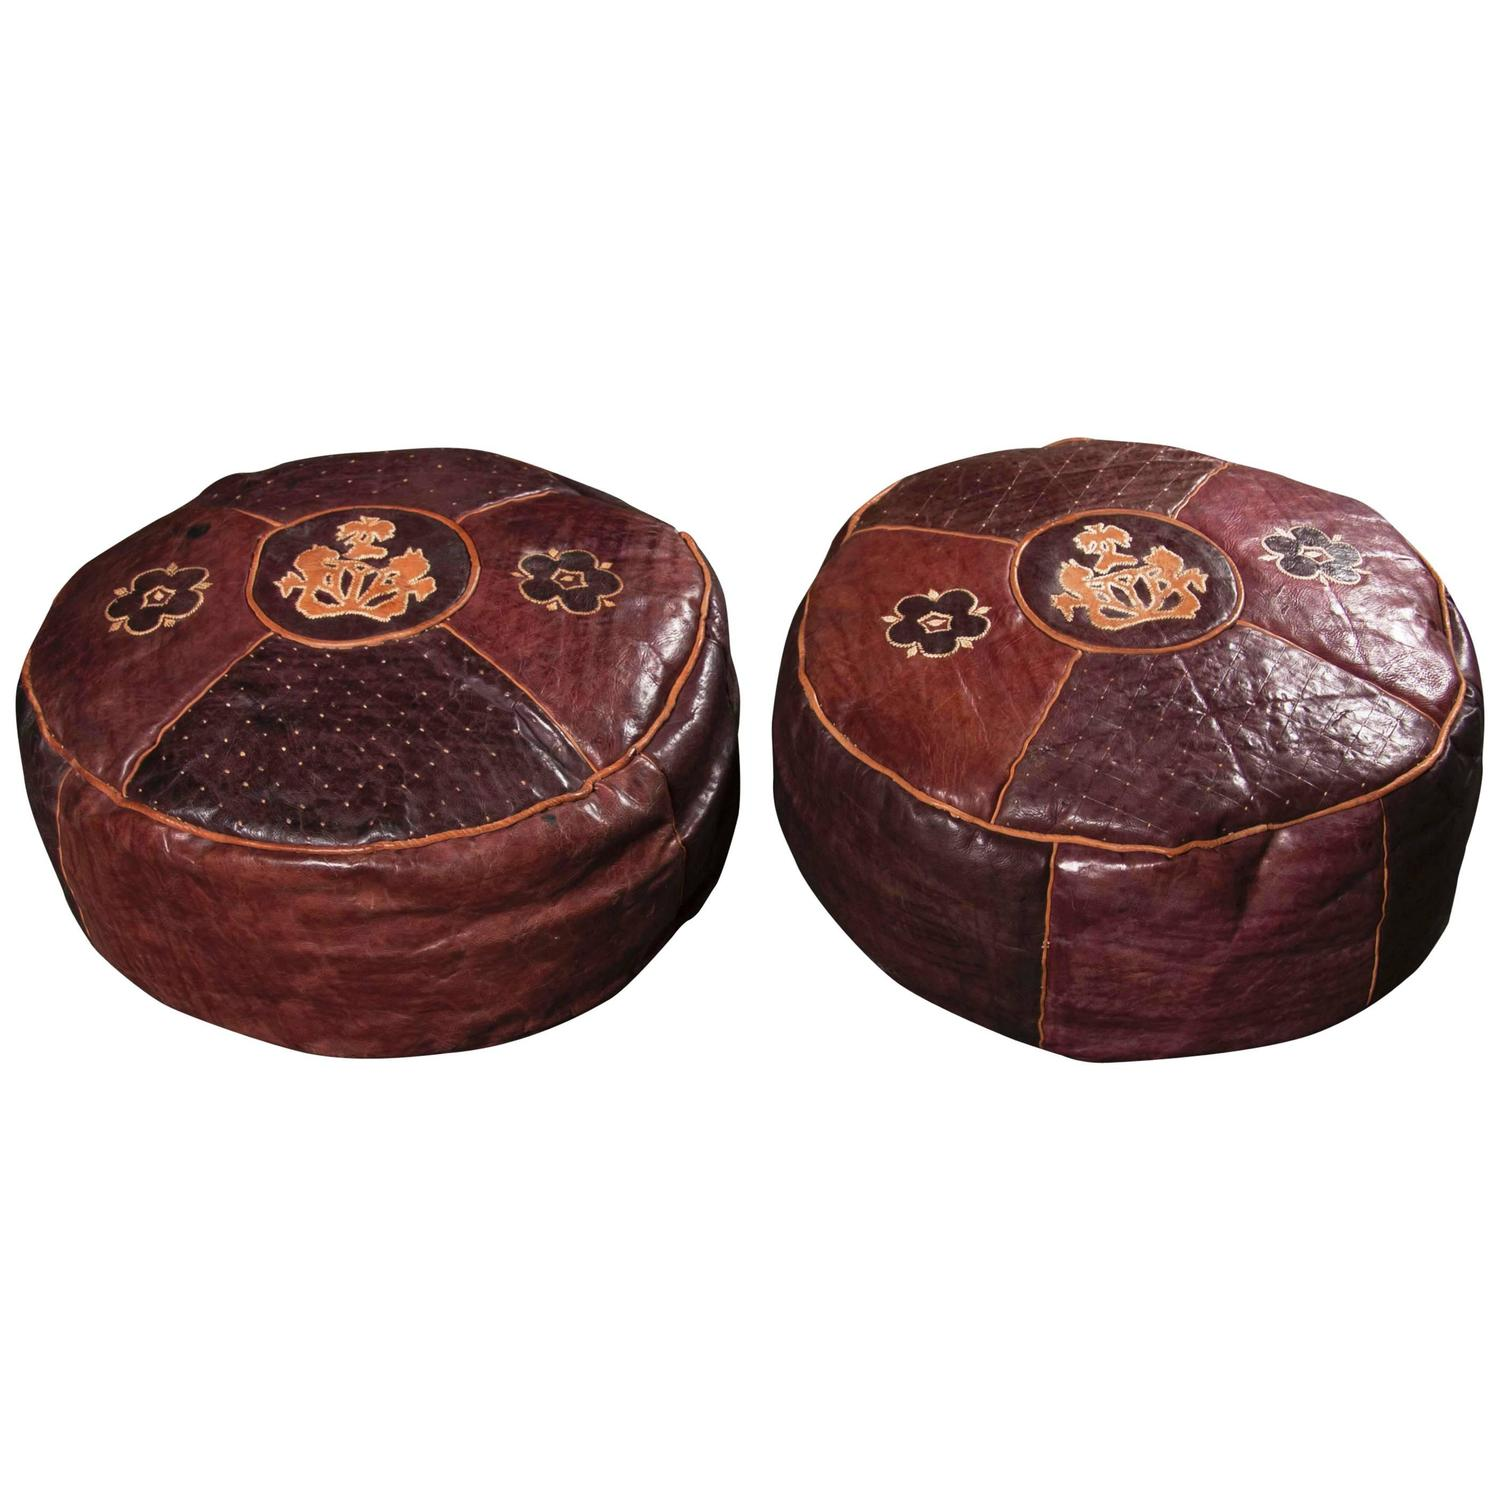 Pair Of Leather Floor Cushions At 1stdibs